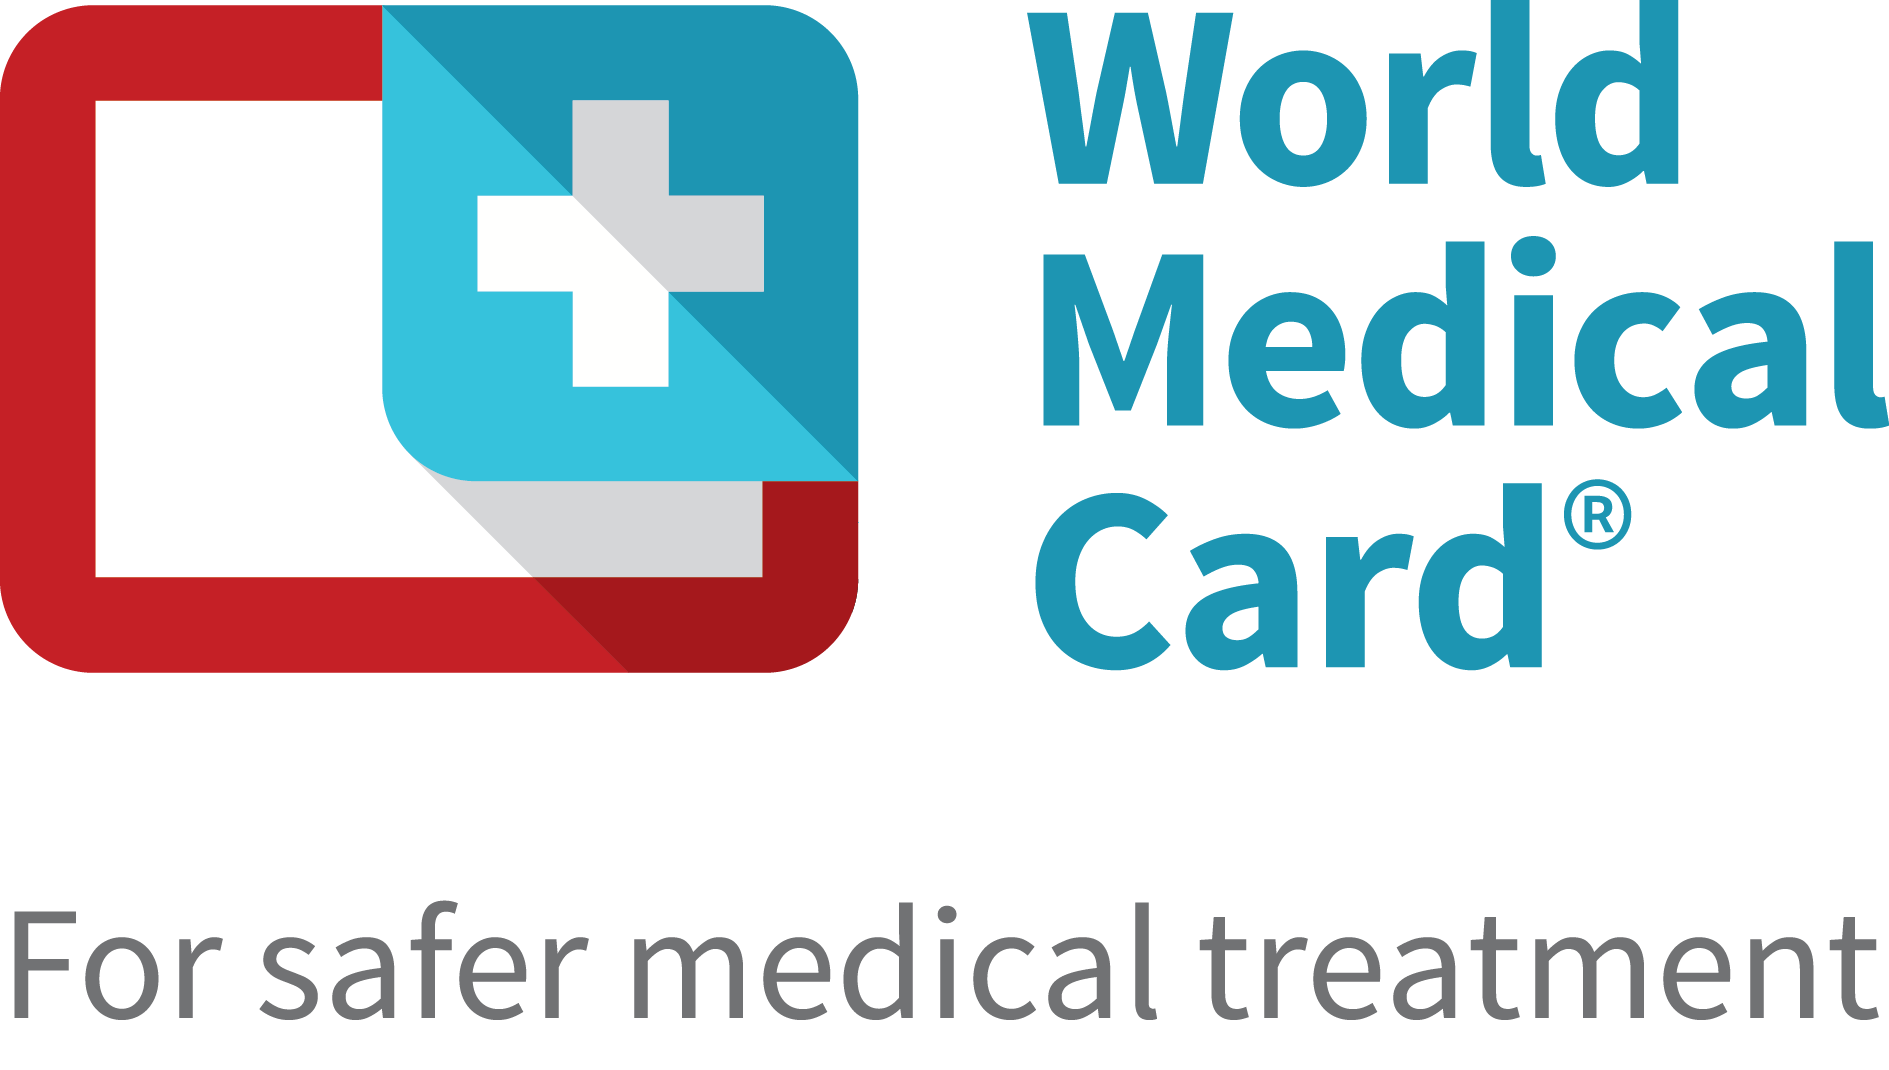 world medical card logo.png